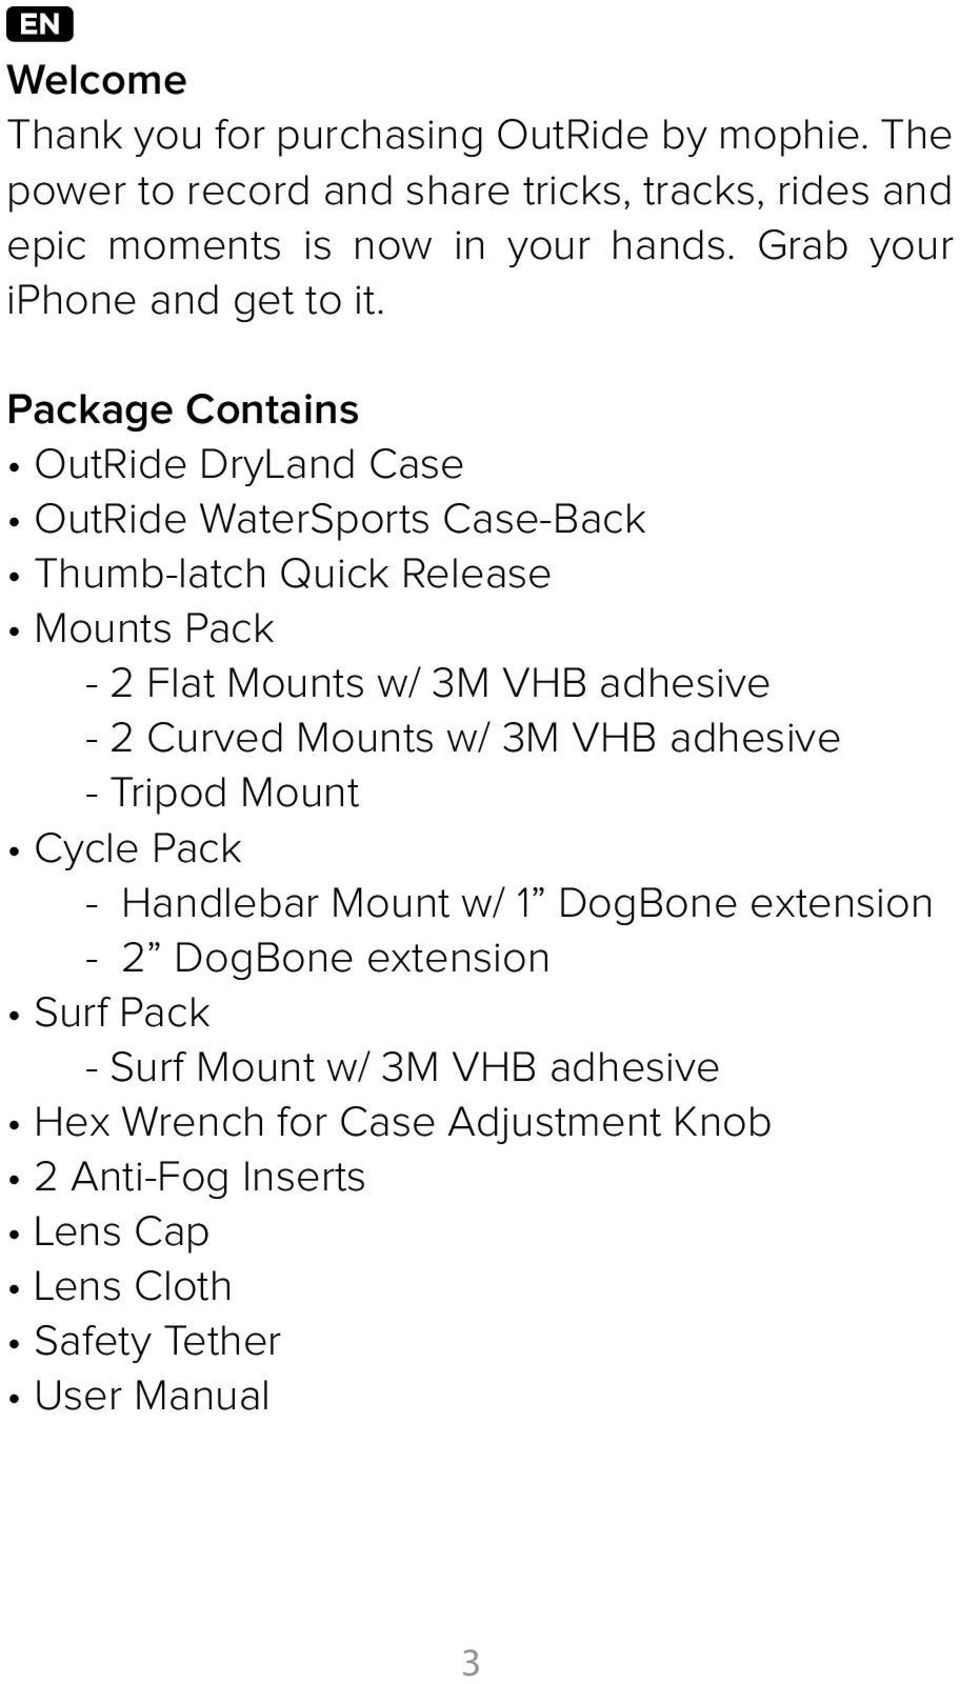 Package Contains OutRide DryLand Case OutRide WaterSports Case-Back Thumb-latch Quick Release Mounts Pack - 2 Flat Mounts w/ 3M VHB adhesive - 2